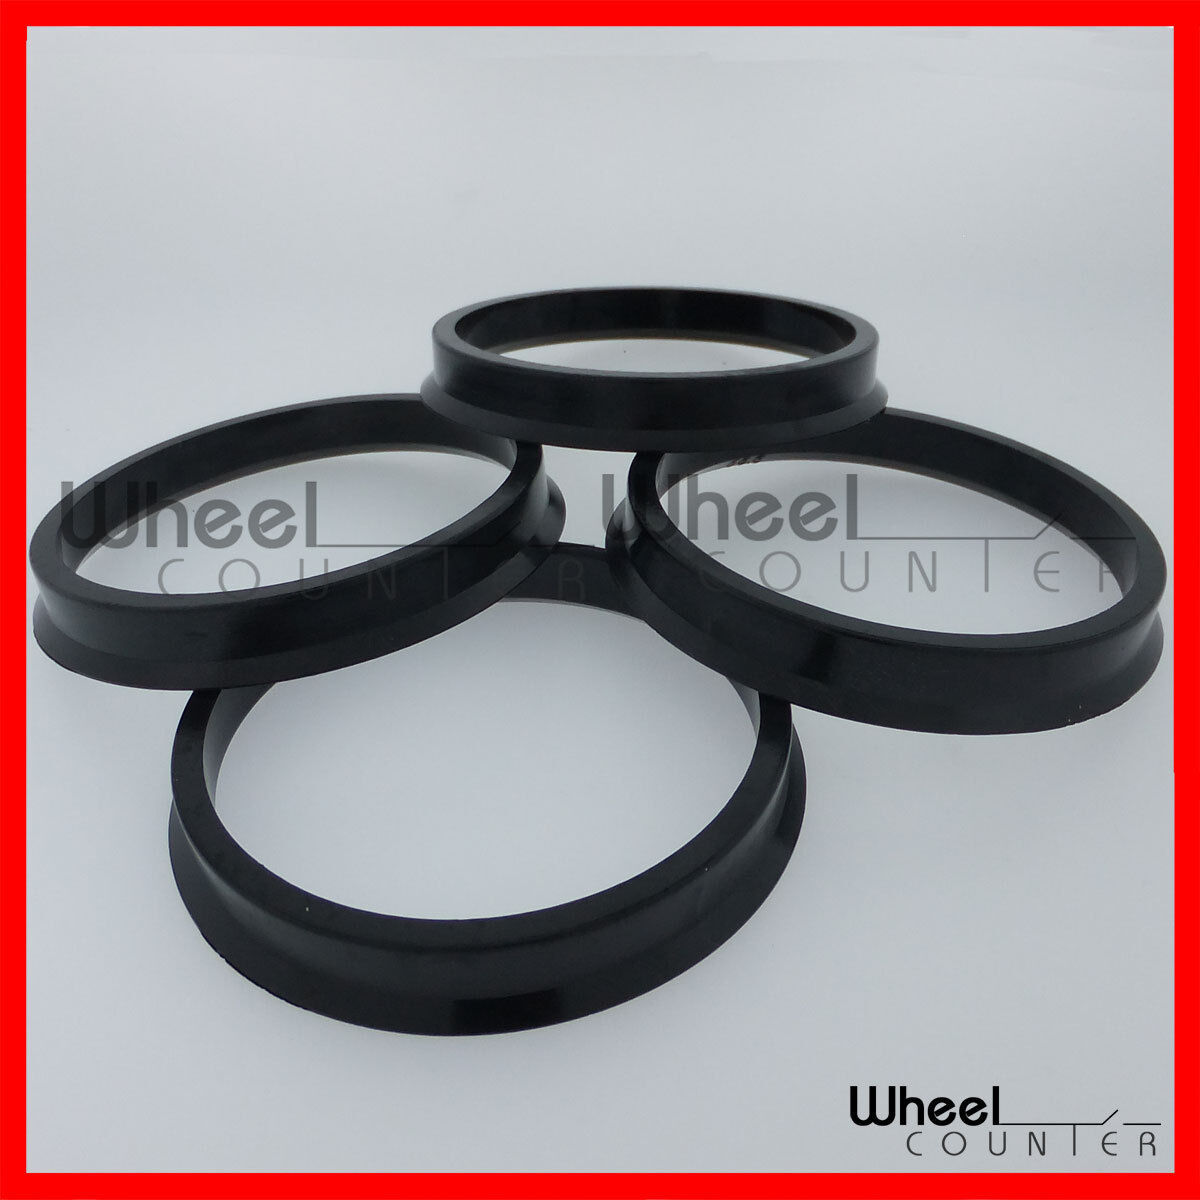 HUB CENTRIC CENTERING RINGS 73 73.1mm TO 66.56 66.56mm